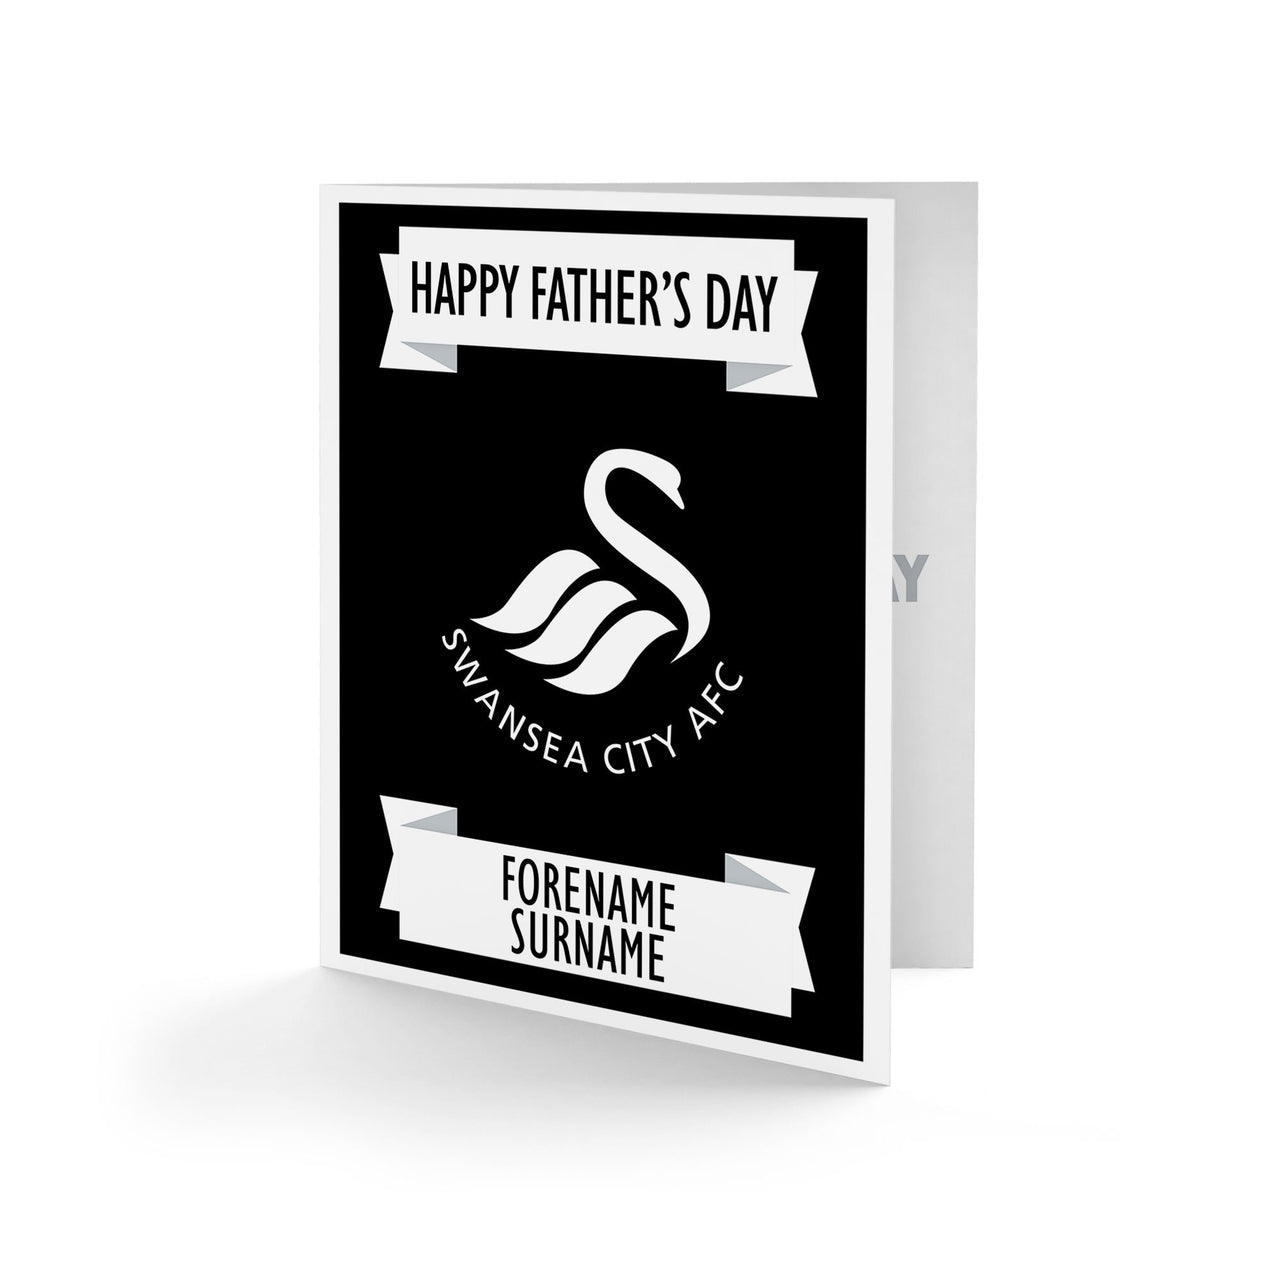 Swansea City AFC Crest Father's Day Card